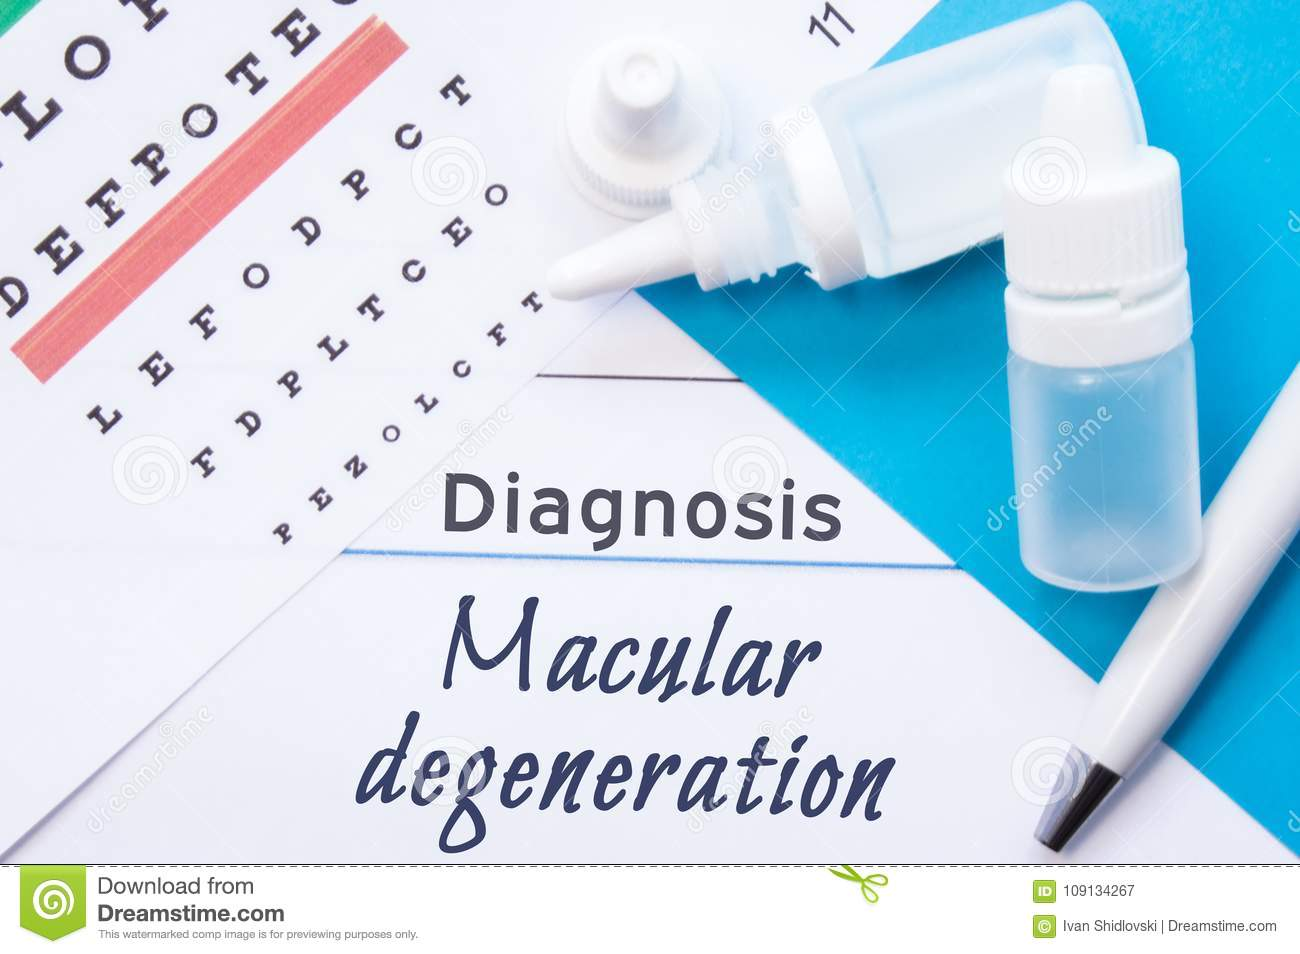 Macular Degeneration Stock Images - Download 148 Royalty Free Photos